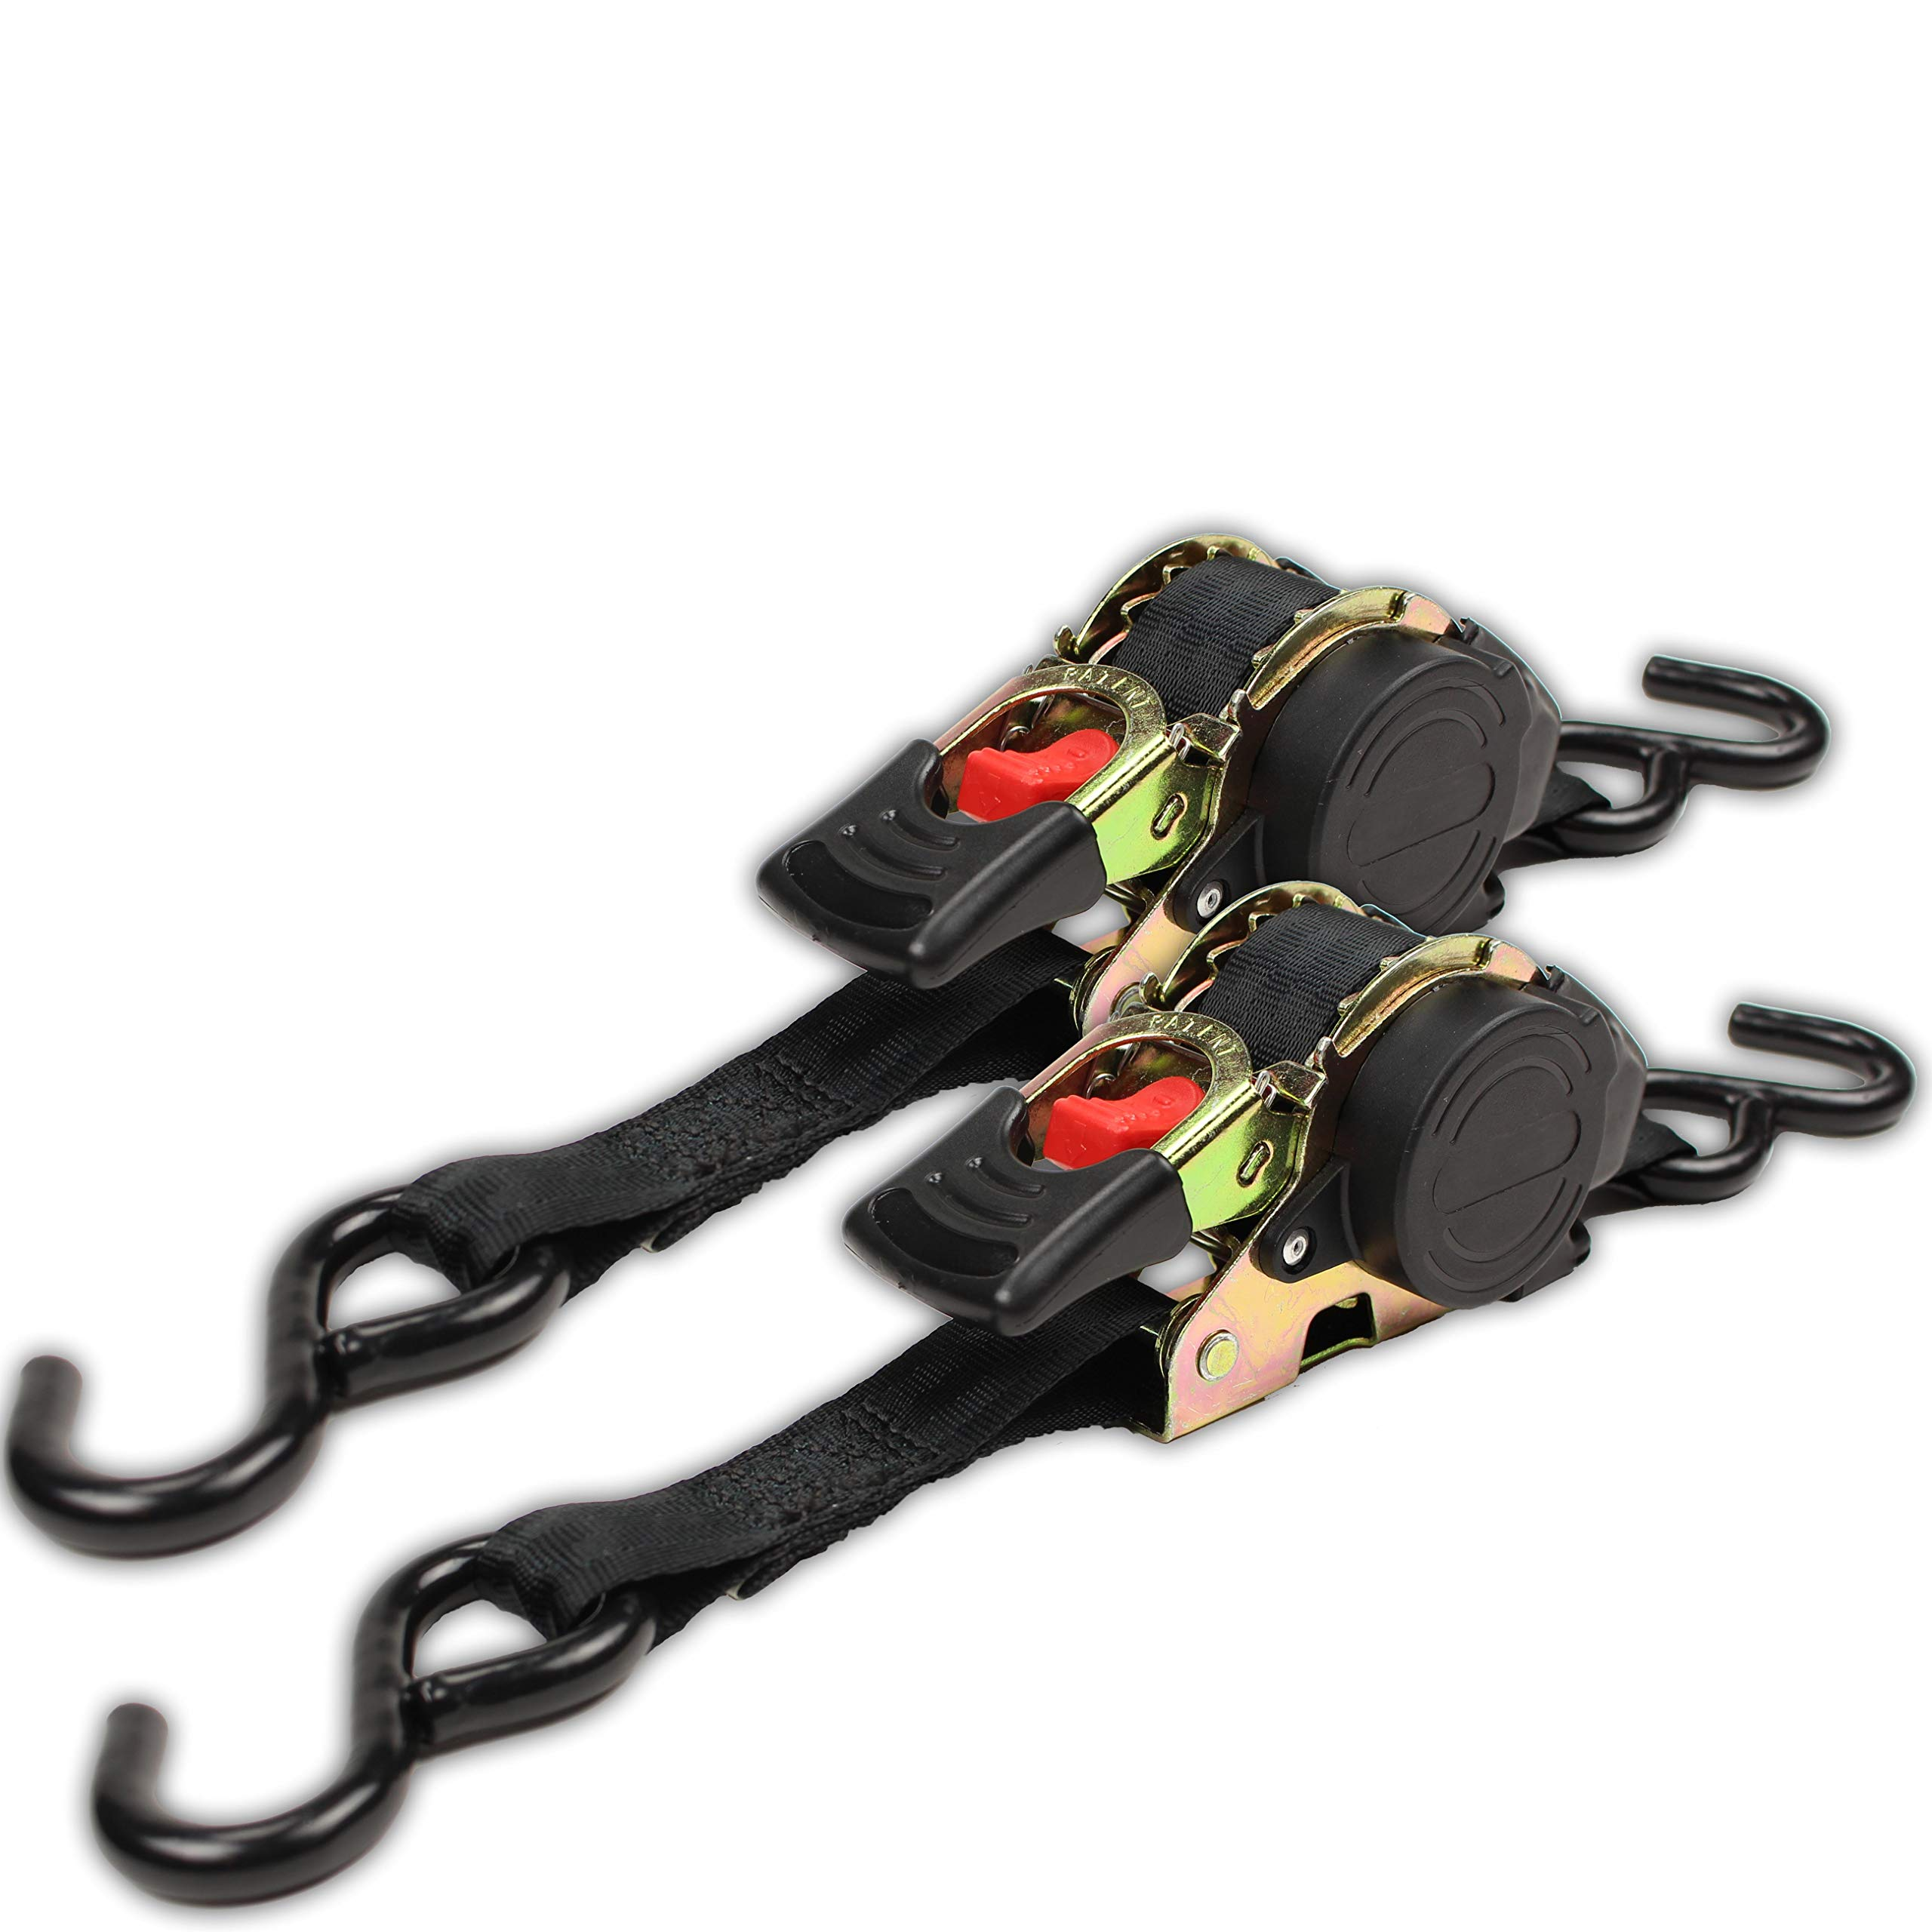 (2-Pack) Retractable Ratchet Straps with Vinyl Coated S-Hooks, 1'' x 10' Ratcheting Tie-Downs for Easy, Tangle-Free Hauling in Trailers and Pickups - 1,200 lb Break Strength